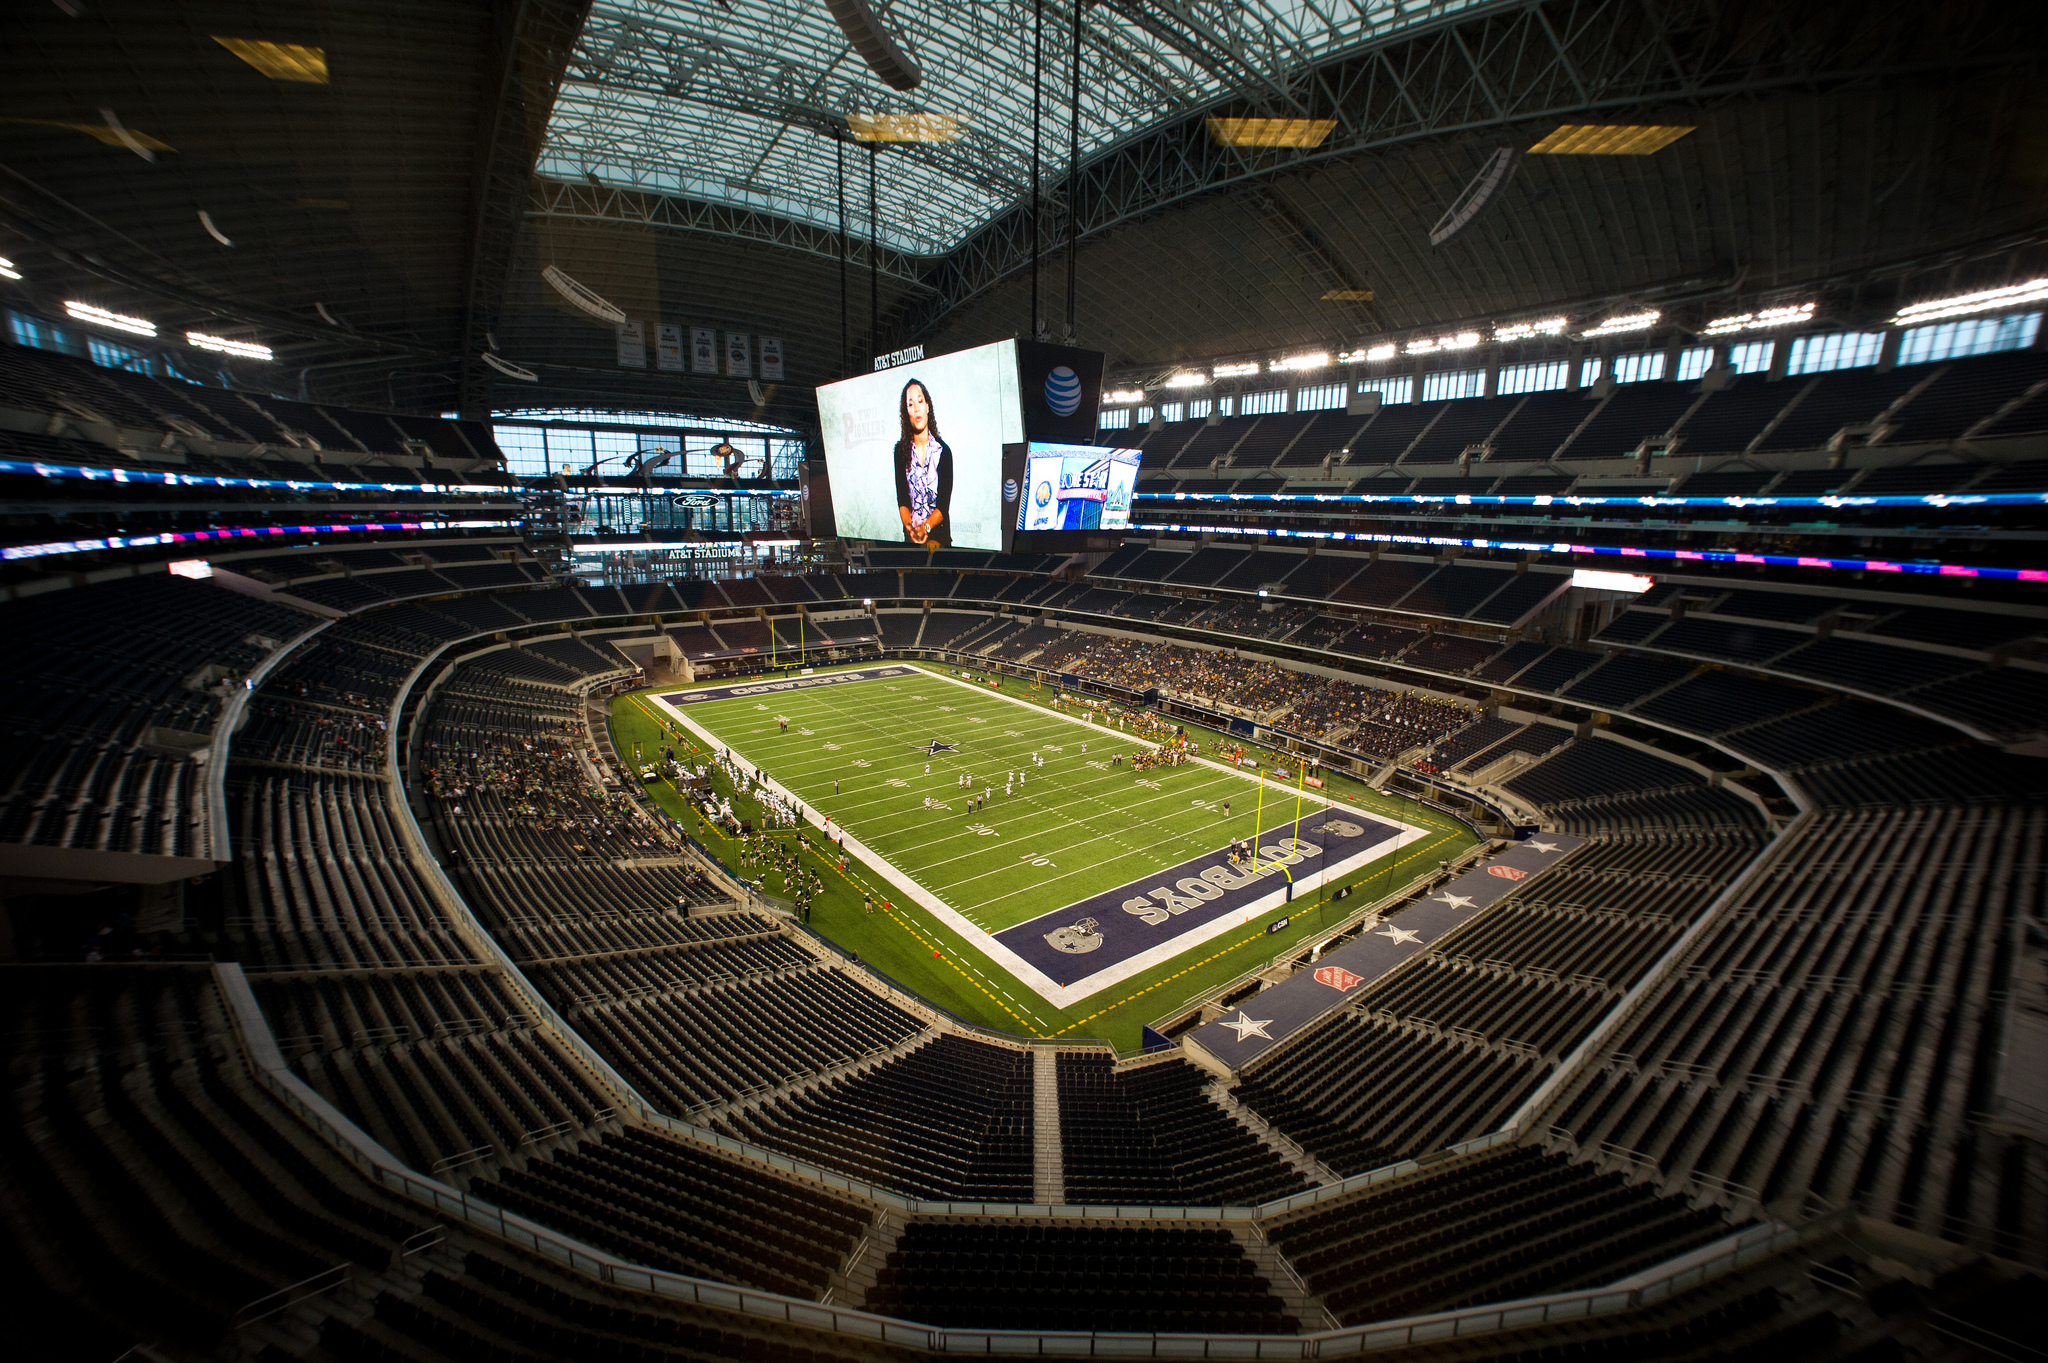 AT&T Stadium Parking Lots (formerly Dallas Cowboys Stadium Parking Lots)